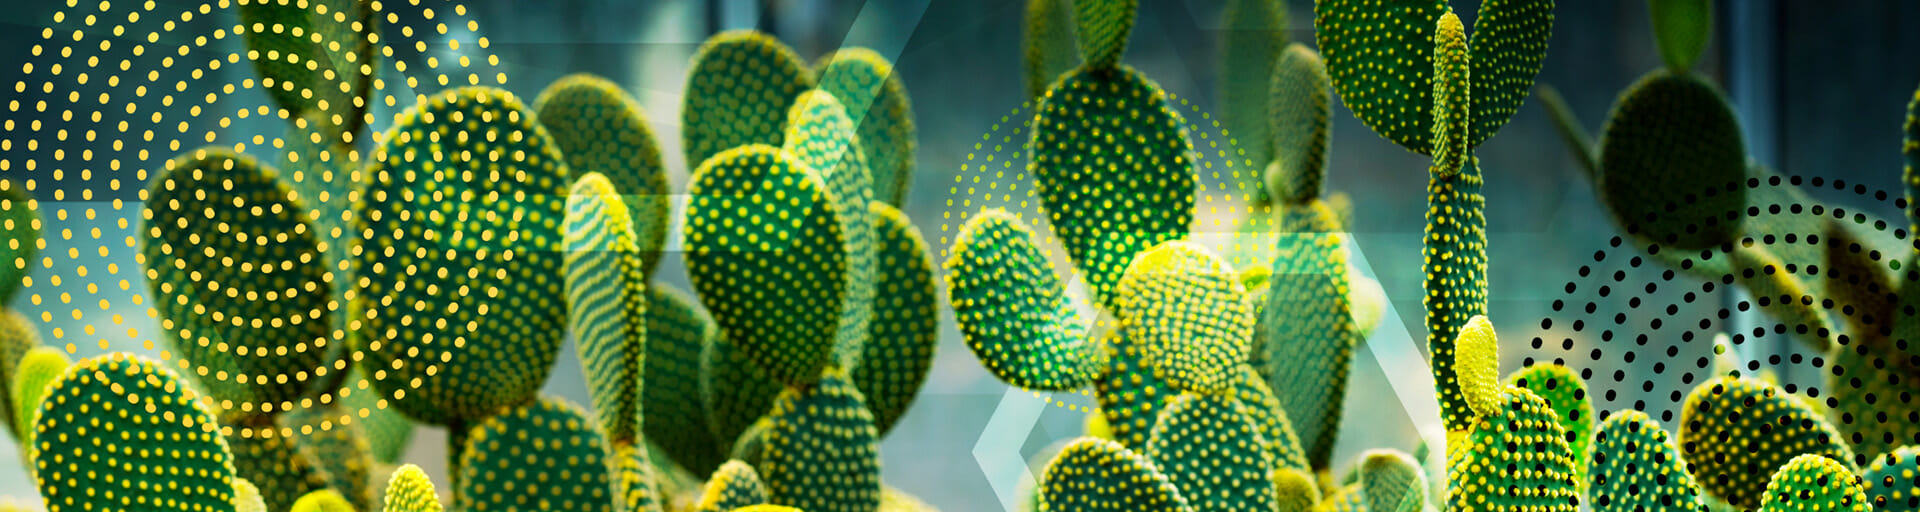 beaver tail cactus with abstract image overlay